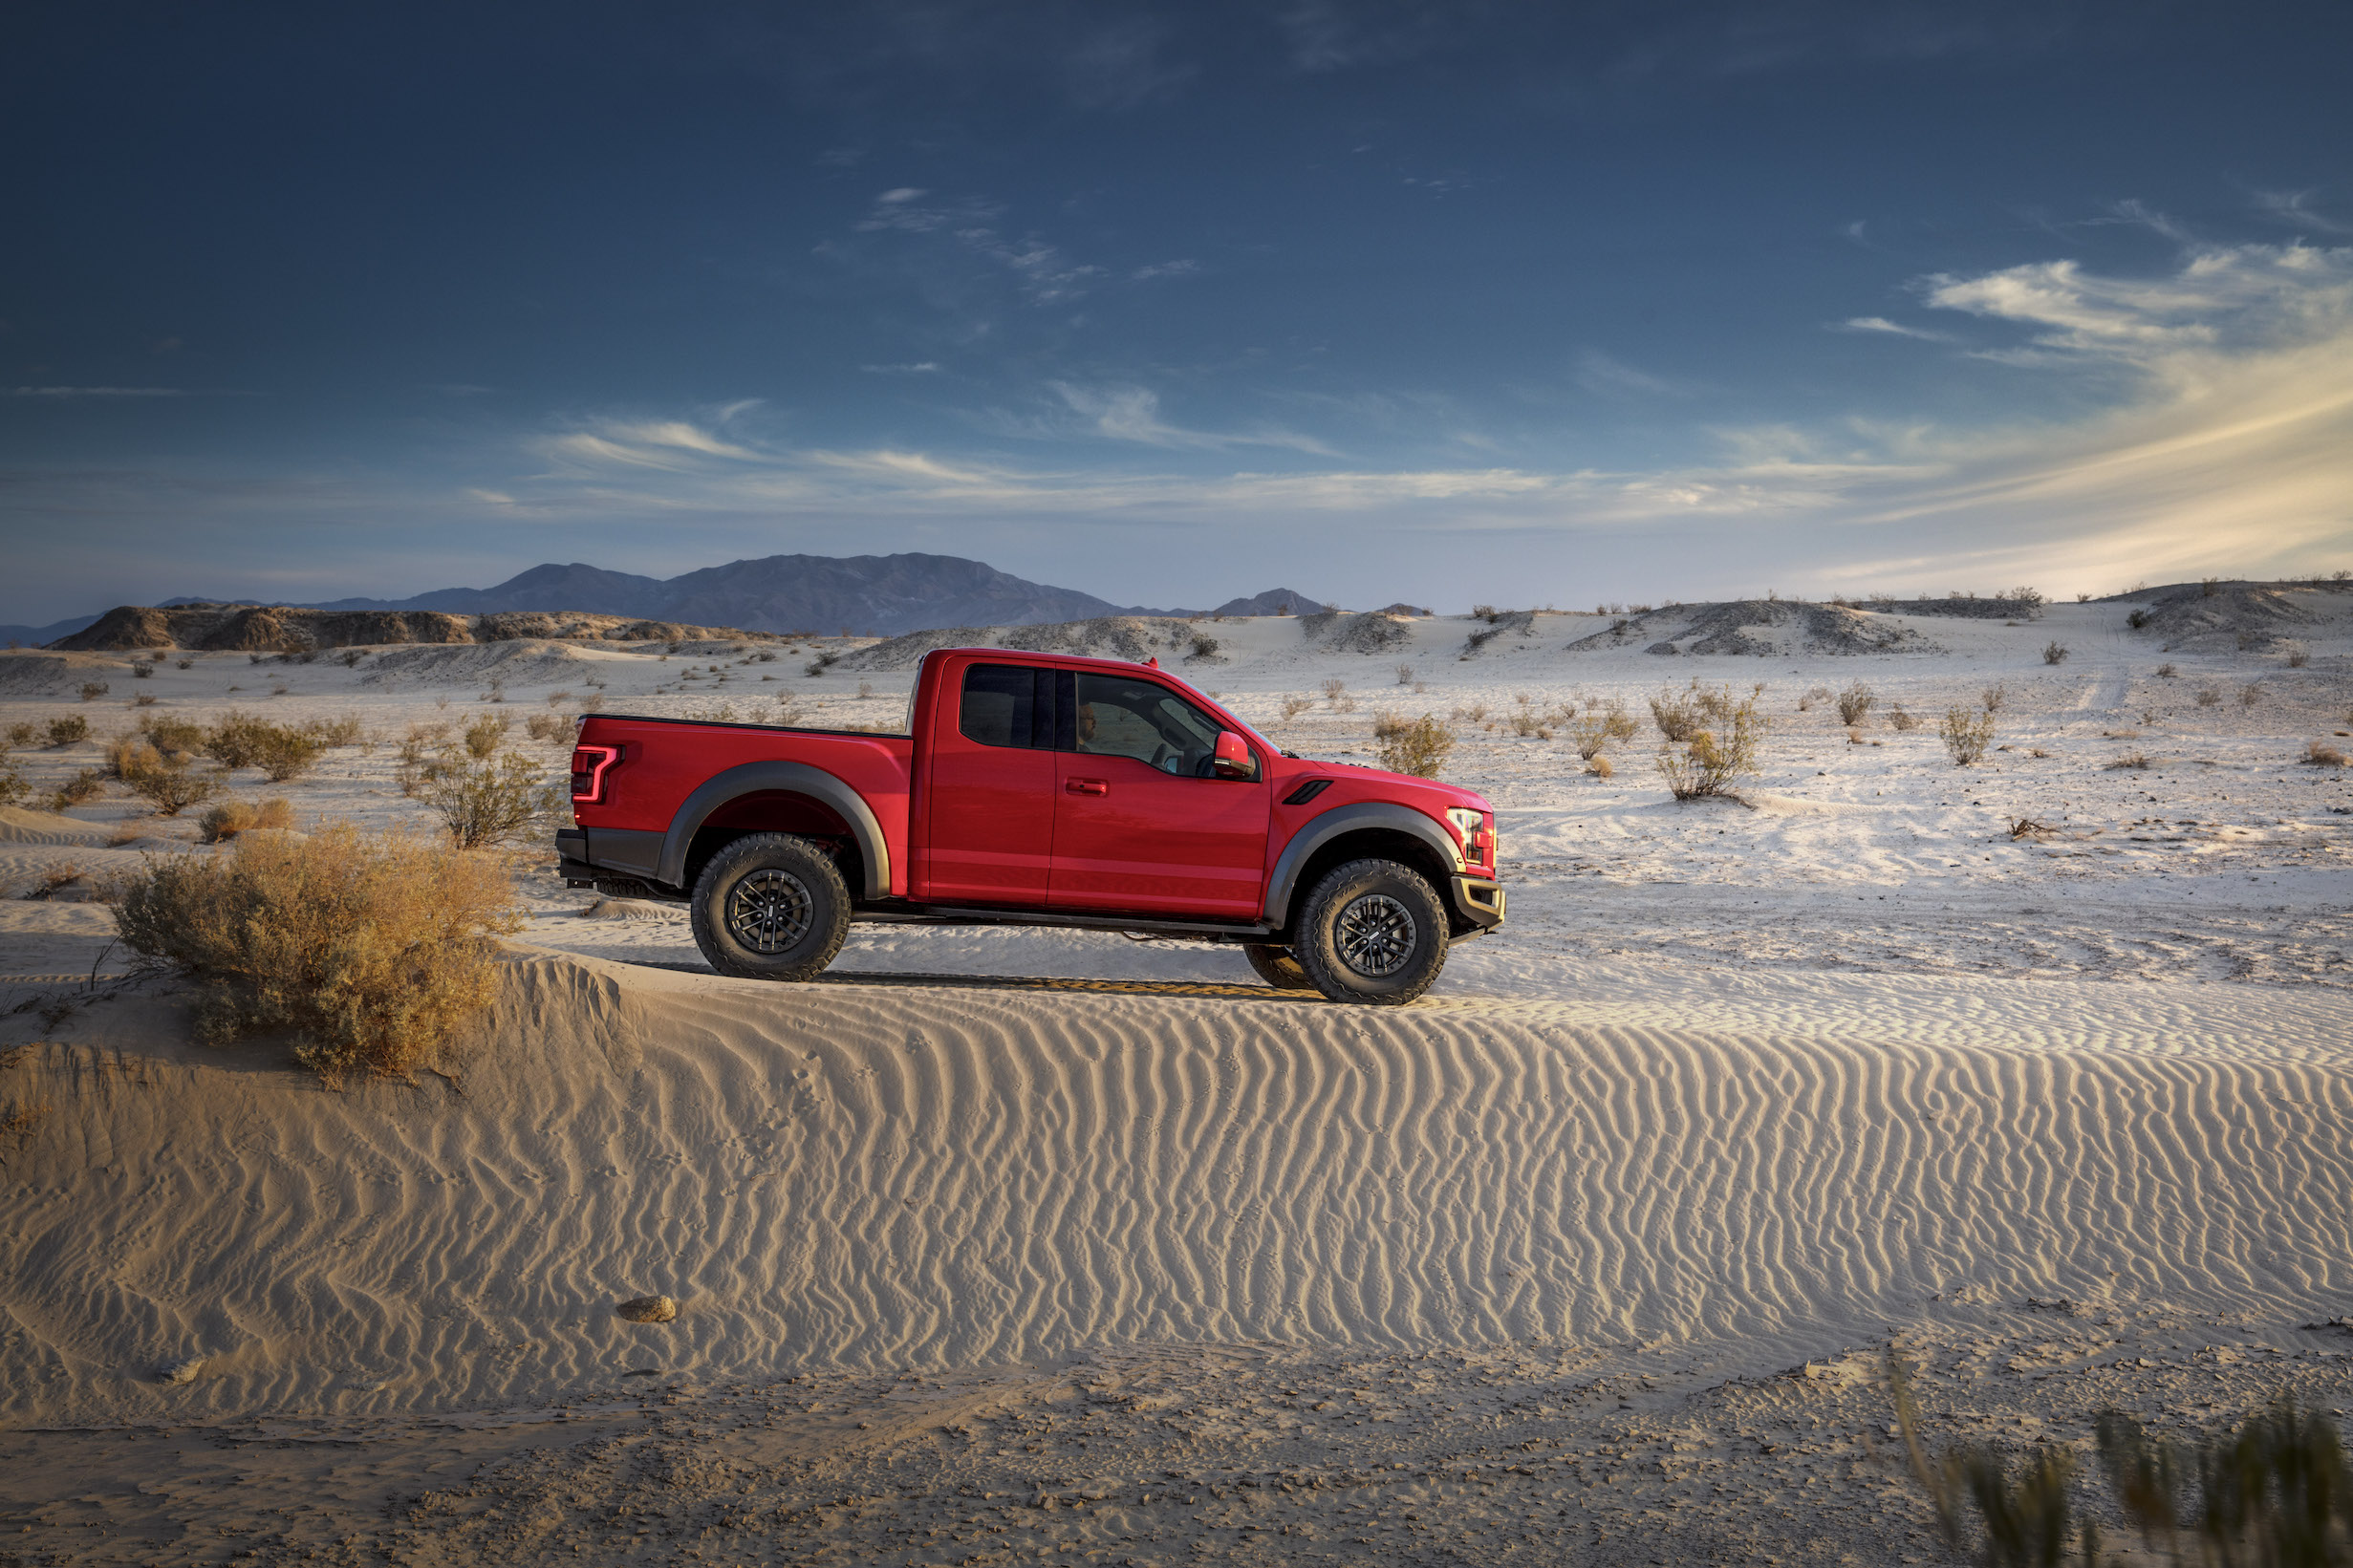 2019 Ford F-150 Raptor Sand Dunes Stationary